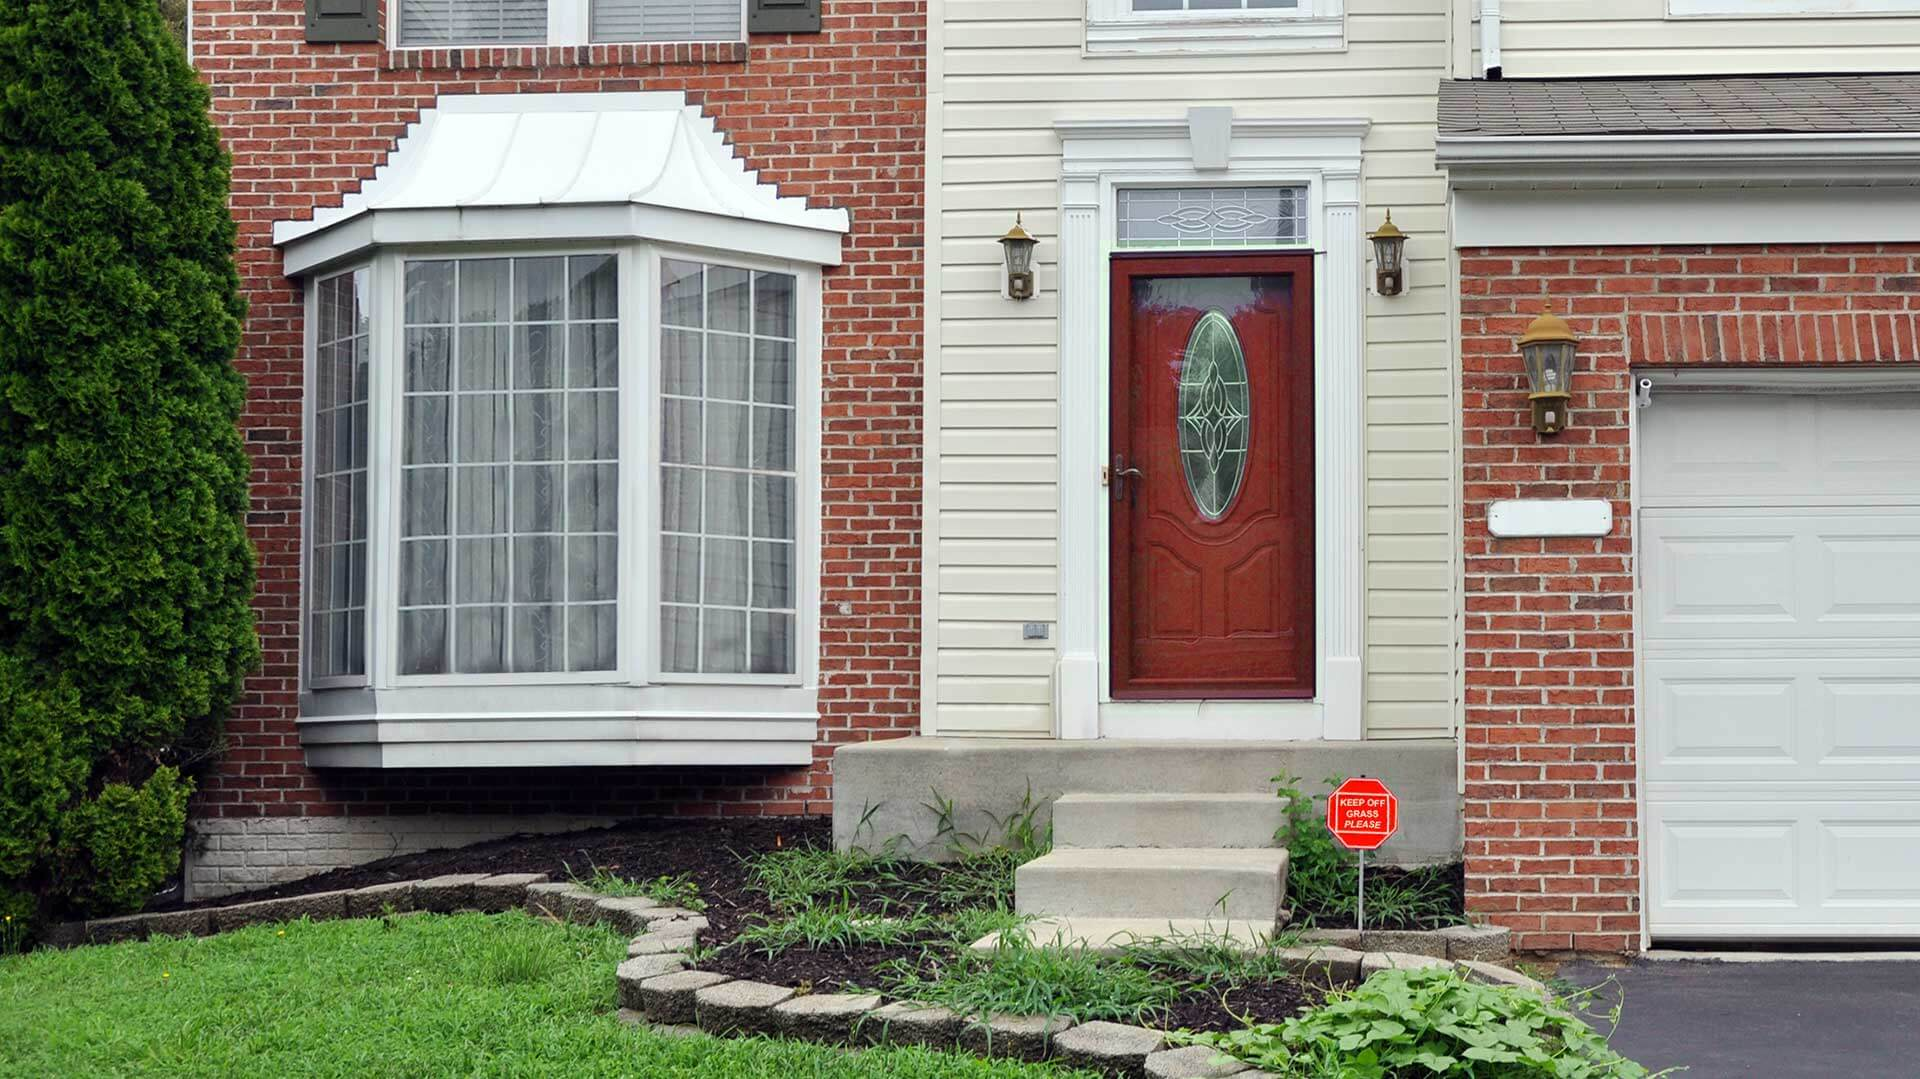 This Detached House In Red Brick Has A Large Bay Window With Colonial Style Grilles